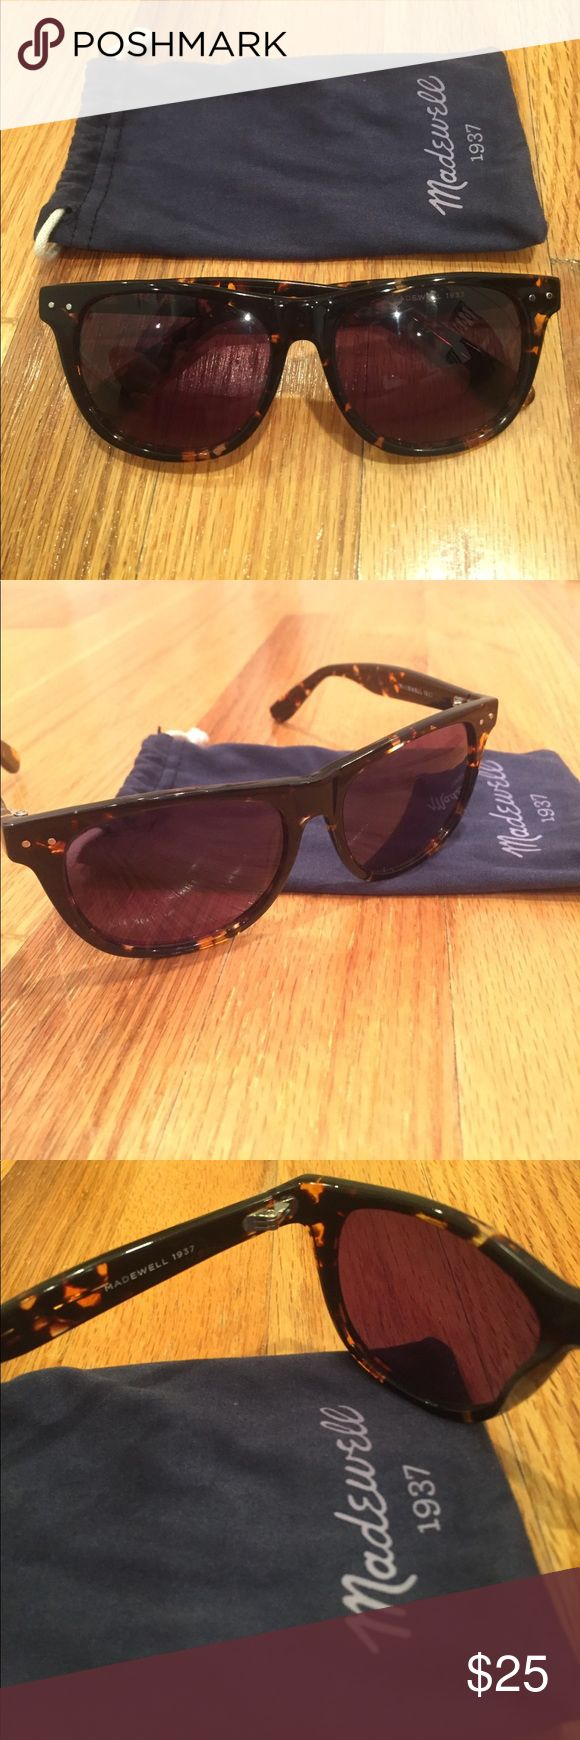 Madewell tortoise sunglasses Madewell brown tortoise sunglasses with madewell carrier Madewell Accessories Sunglasses